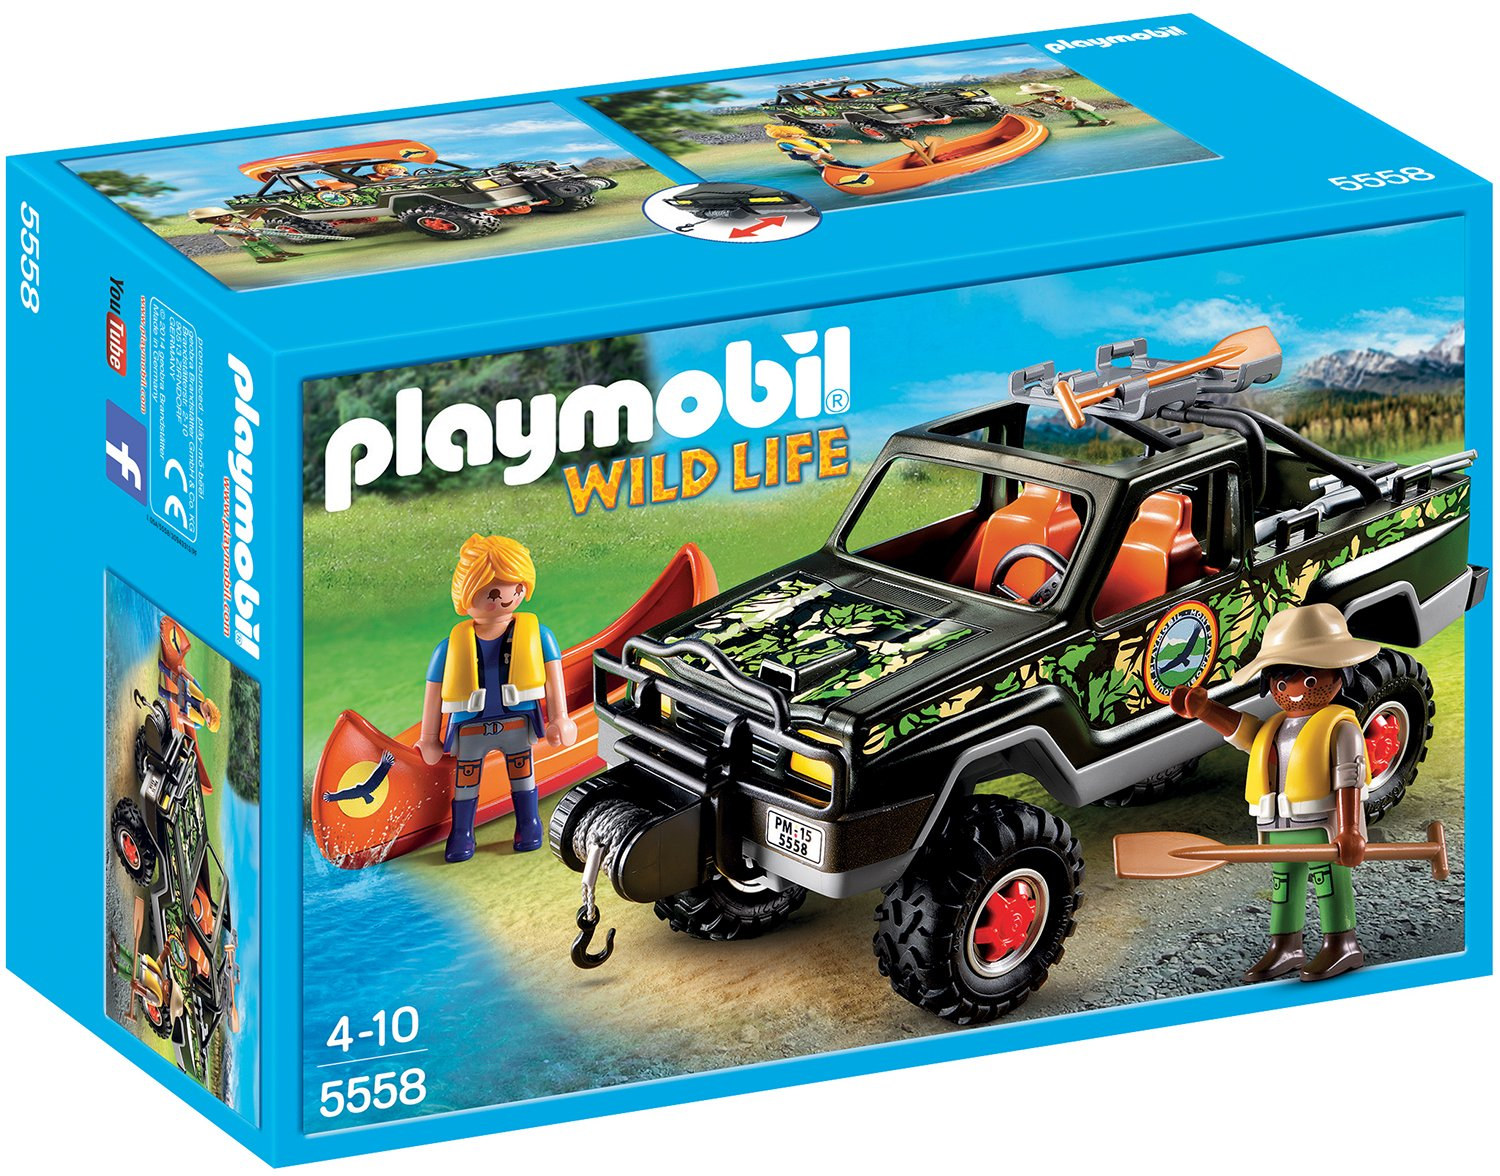 Playmobil Pickup amazon